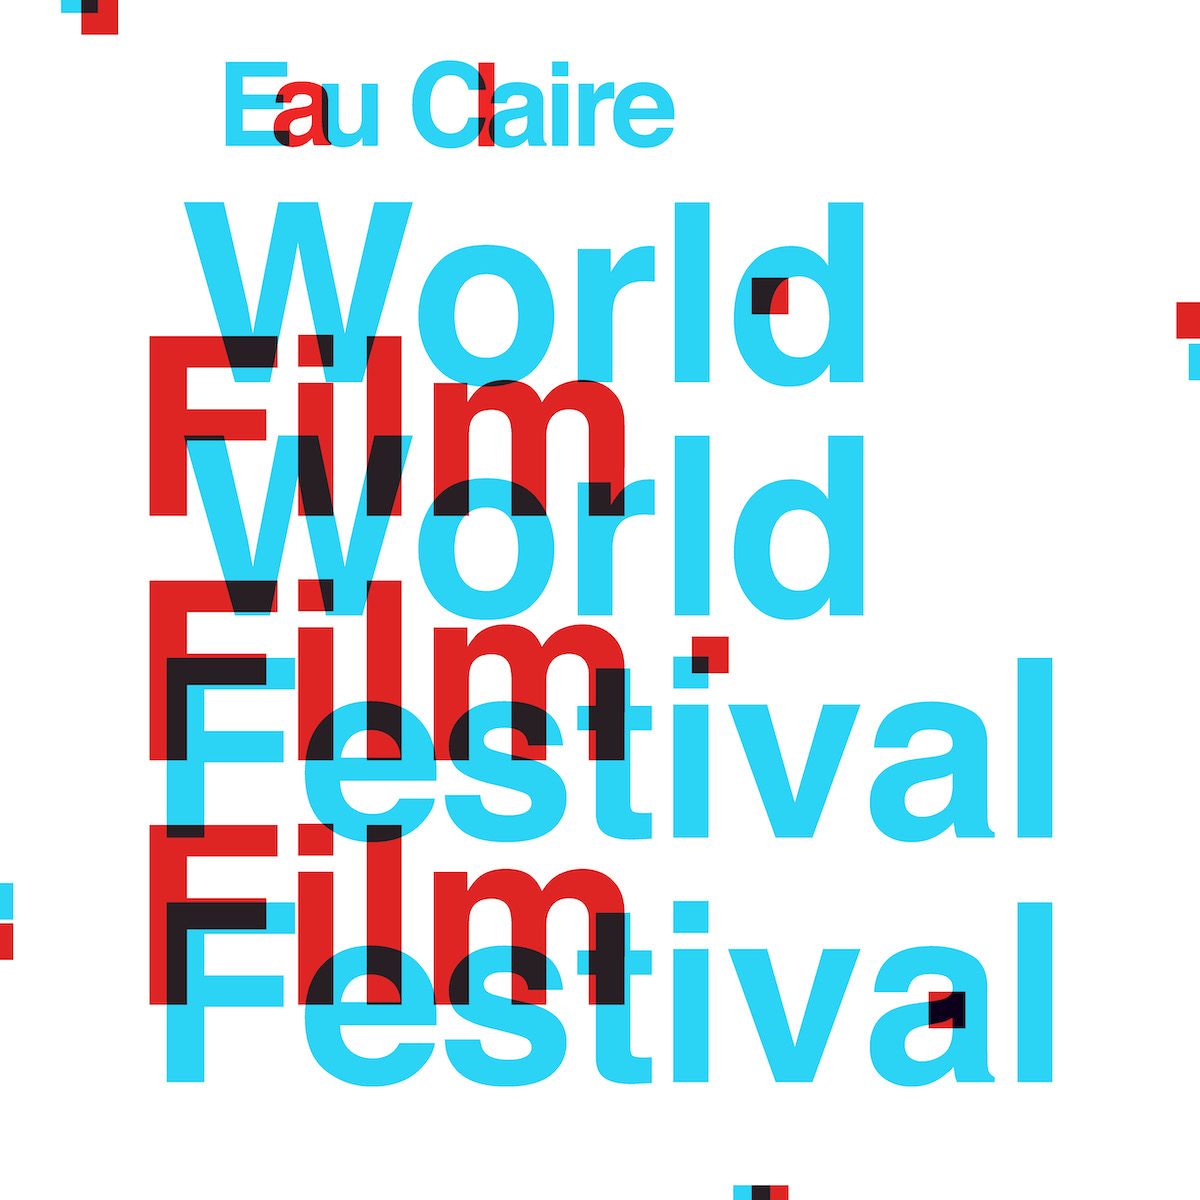 Ferraro said the lineup of short films for the weekend range from comedies and indie films, to cultural films and political documentaries.